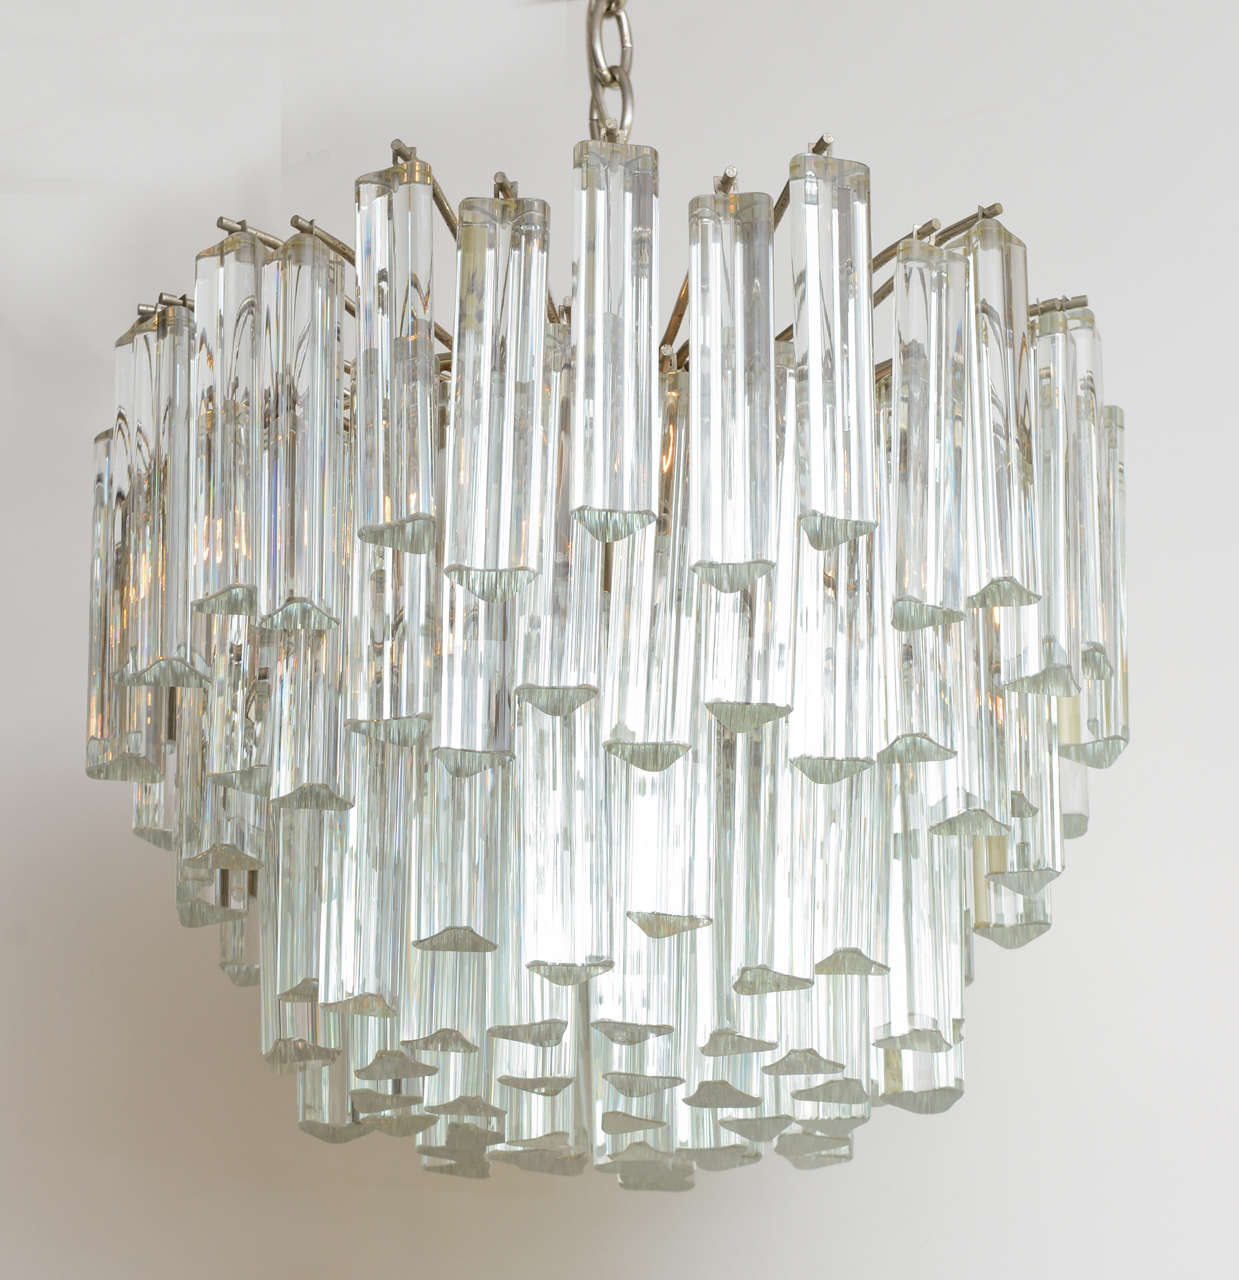 REDUCED FROM $3,750 Stellar Camer glass chandelier, lushly adorned with fat Venini triedri crystals. Stunning, compact with 105 crystals and with four light sources taking medium base bulbs.  Measures: 16